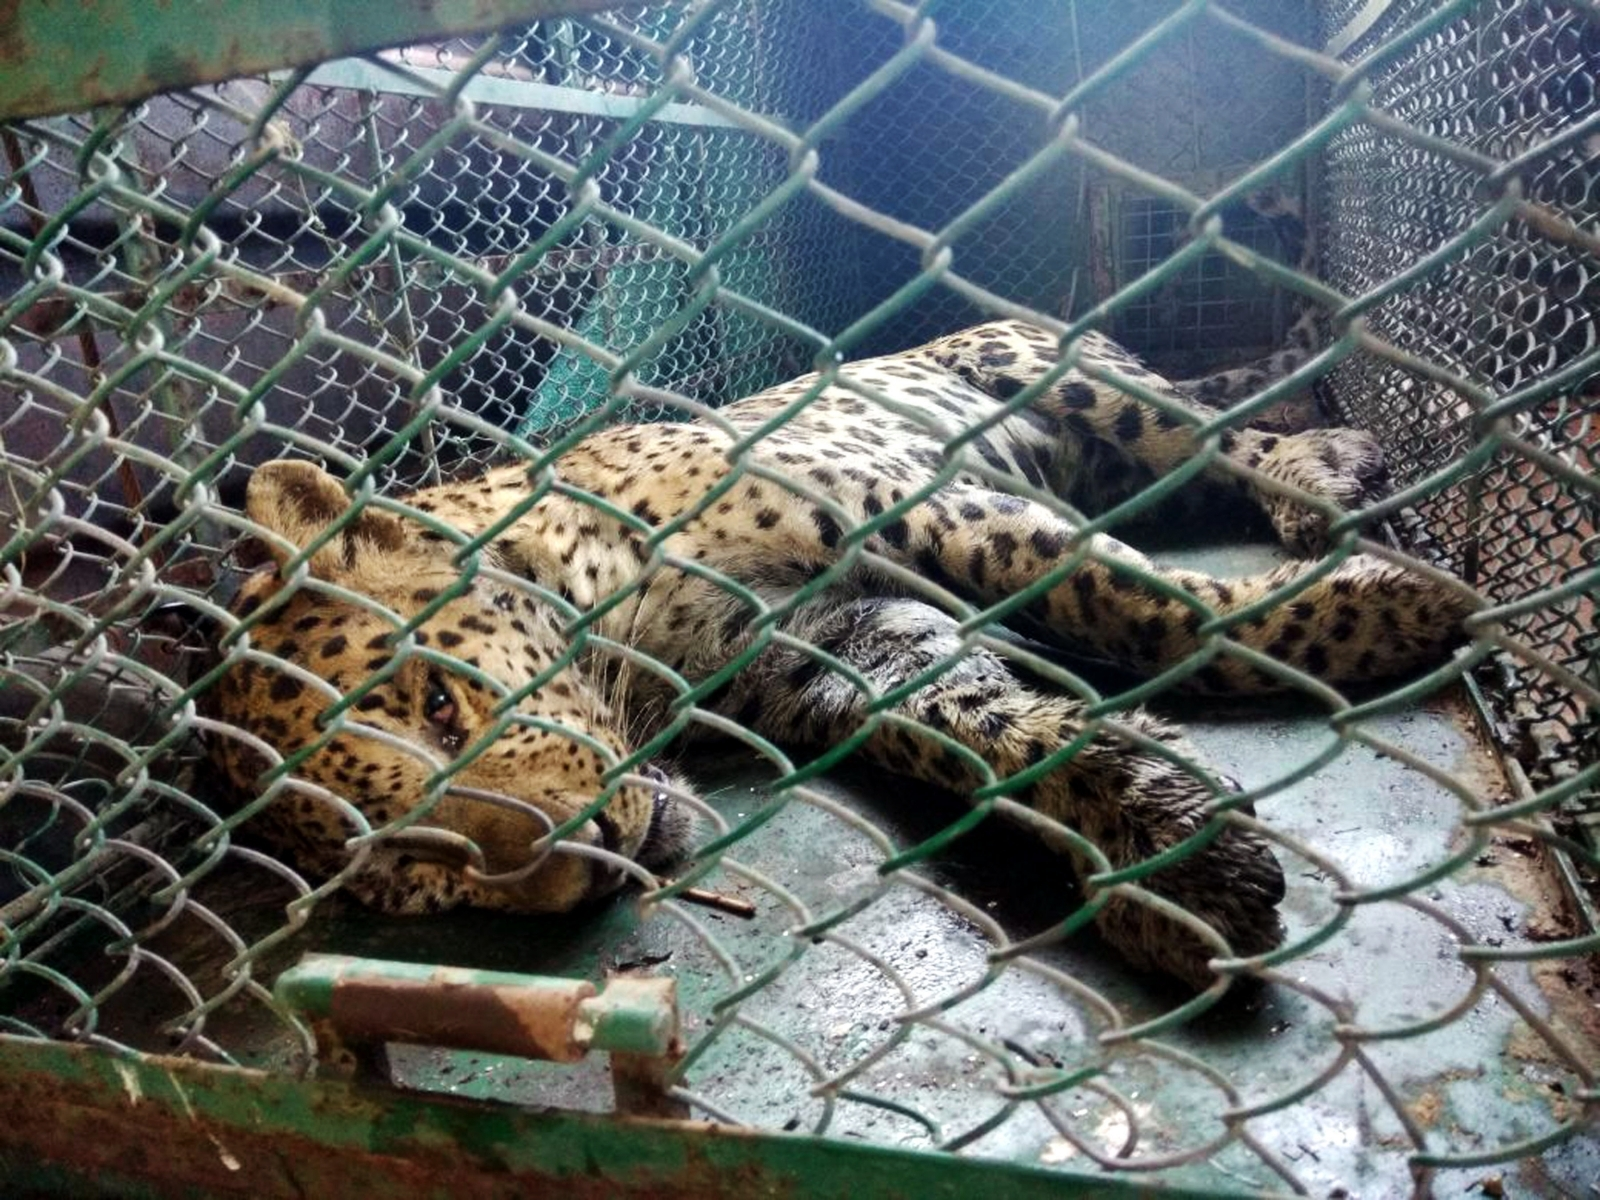 The captured leopard lies sedated inside a cage after being after being tracked down inside the Maruti Suzuki plant in Manesar town by police and wildlife rescuers